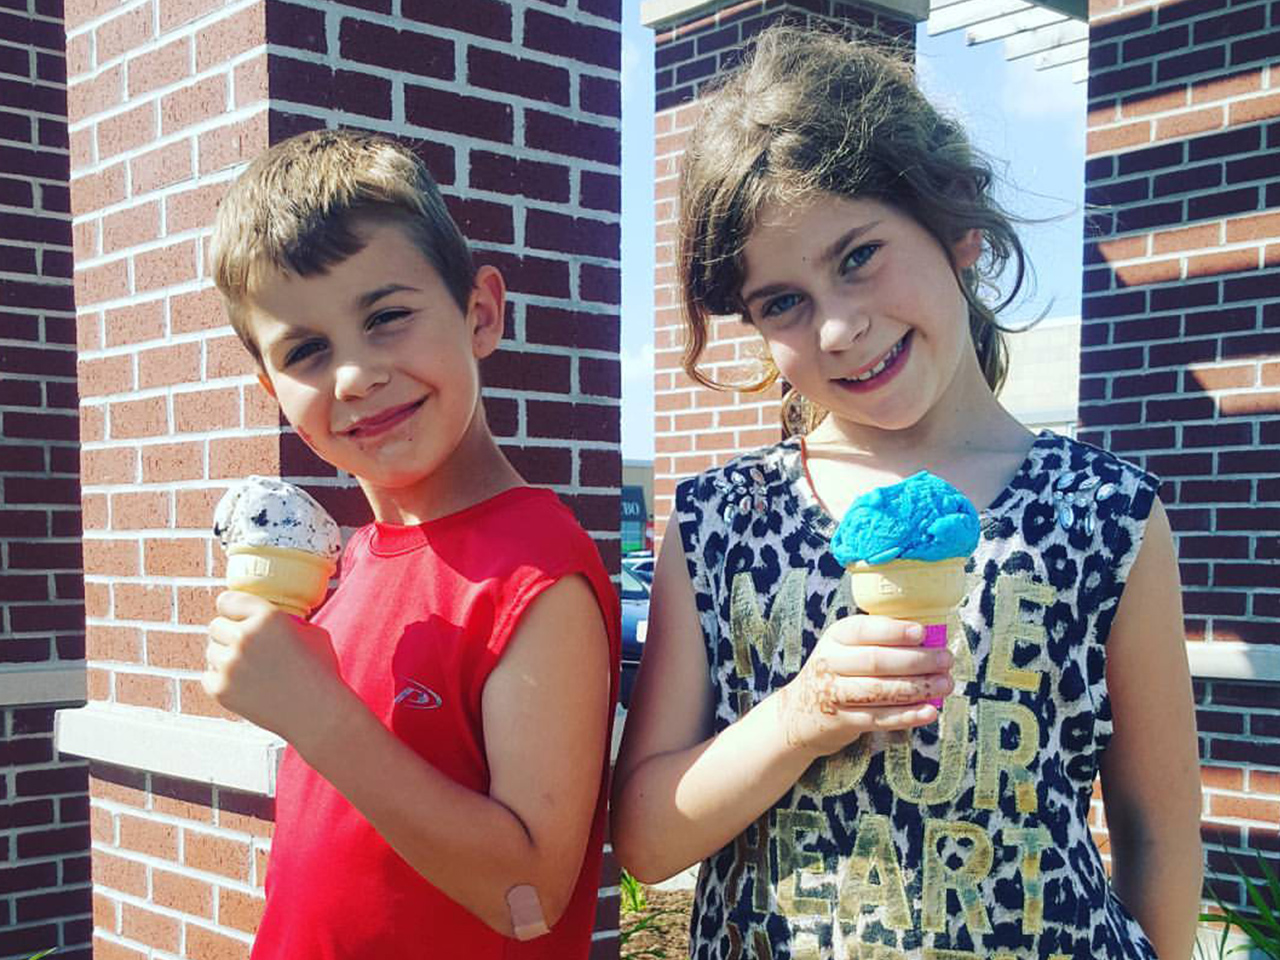 Two kids smiling at the camera while holding ice cream cones